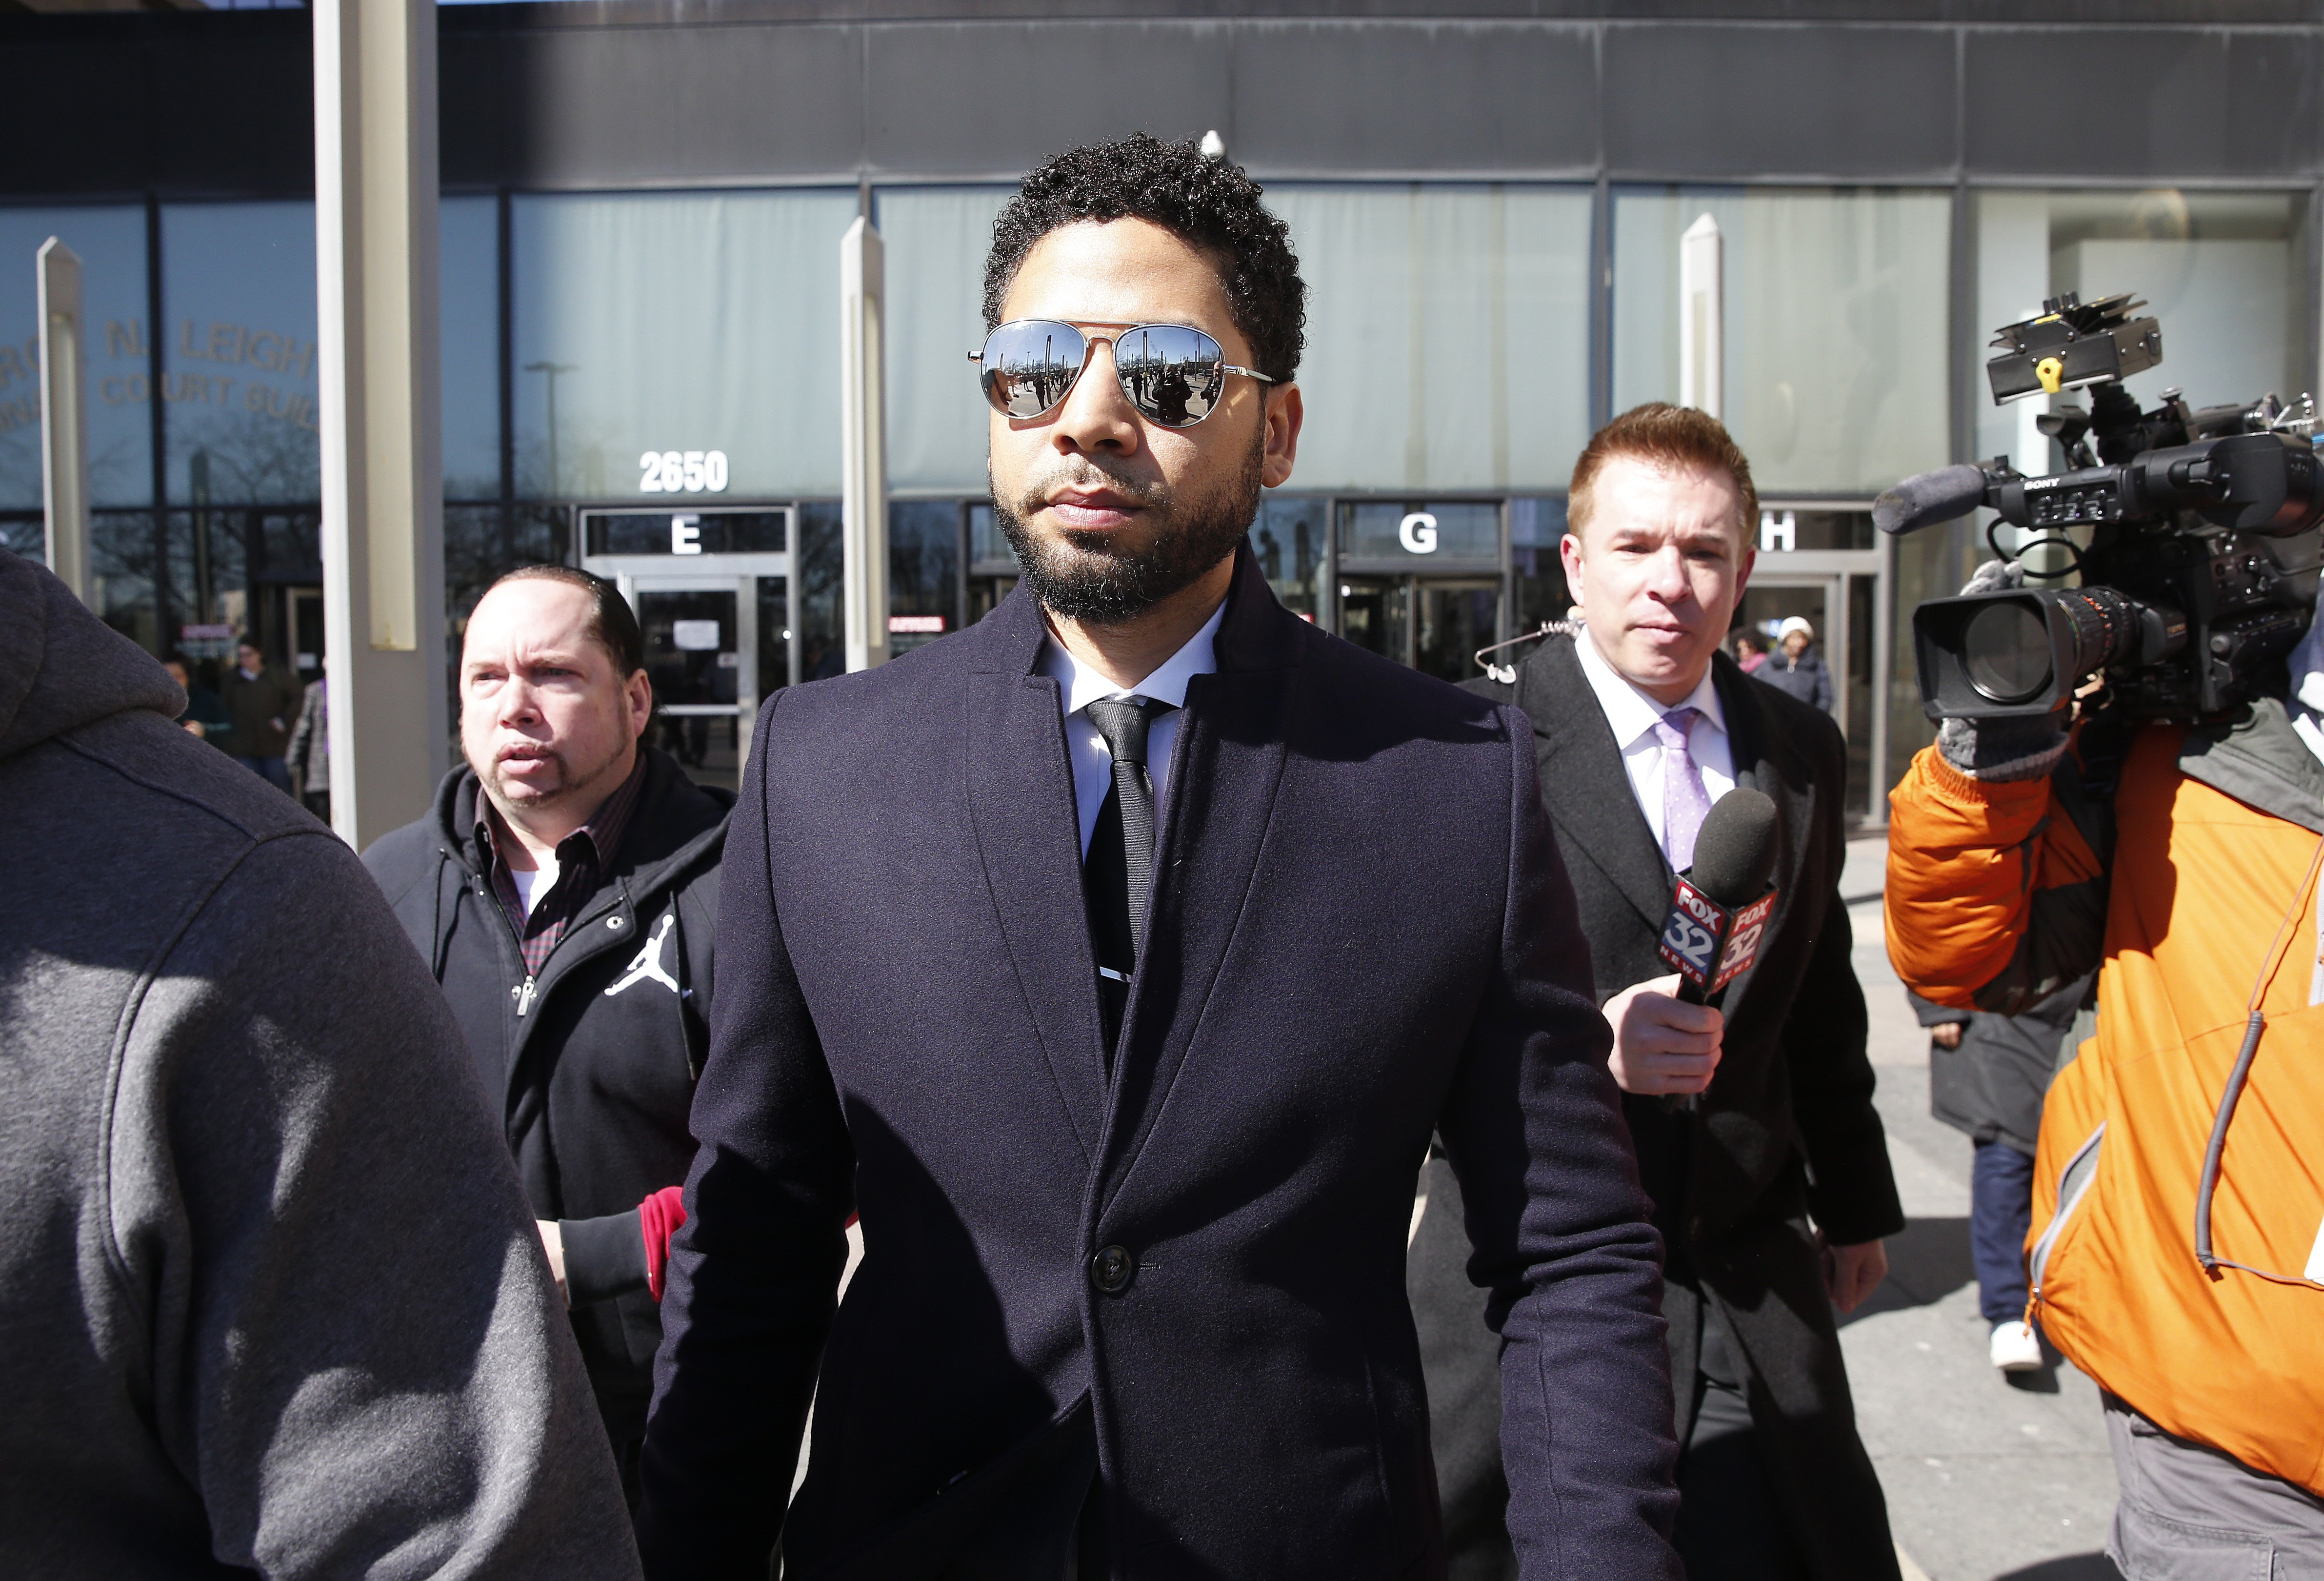 A federal judge refuses to dismiss Chicago's lawsuit against Jussie Smollett